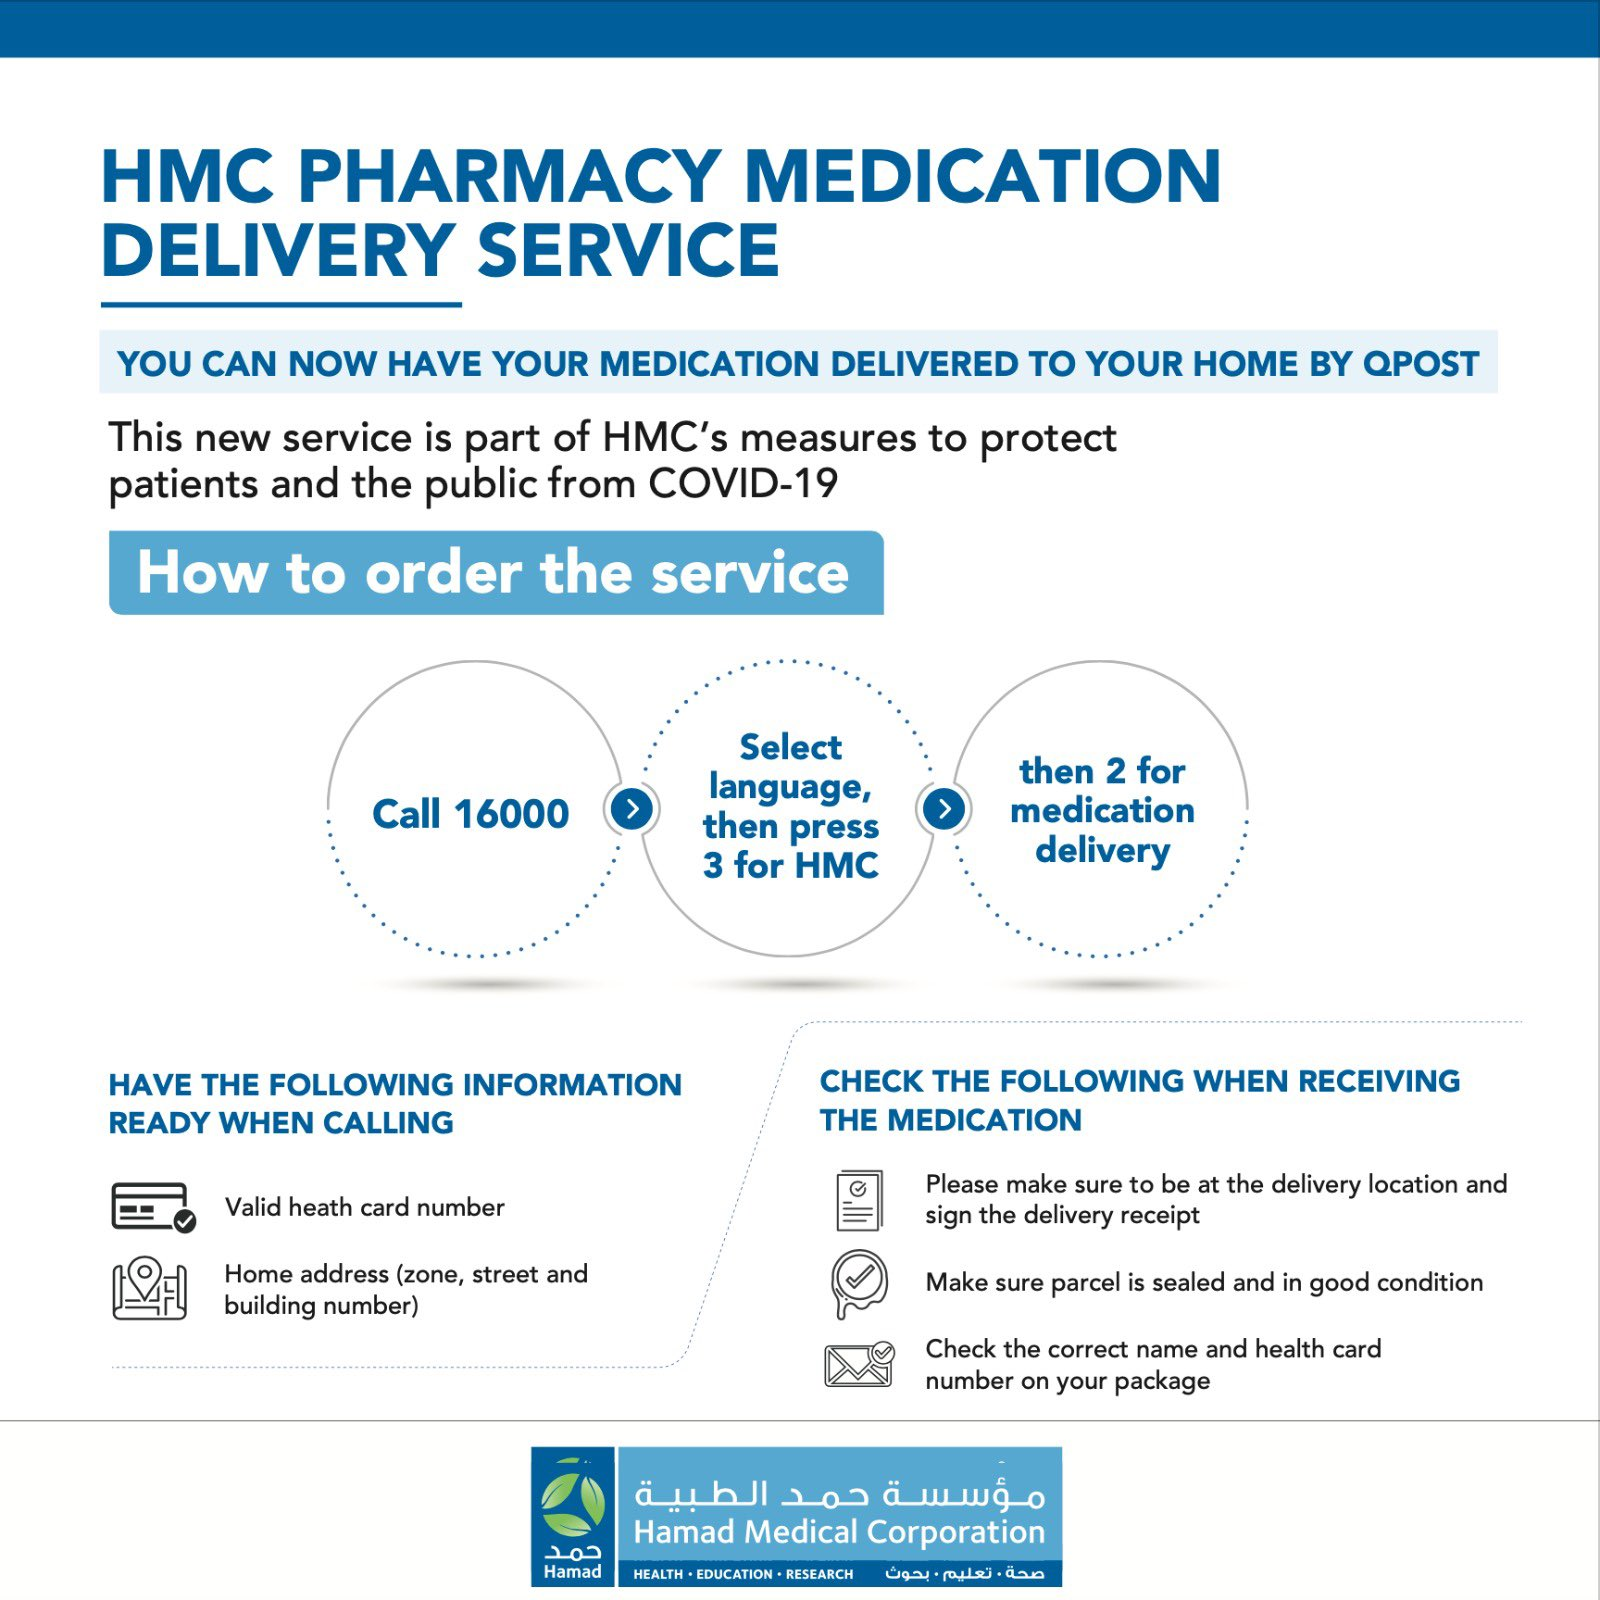 HMC pharmacy medication delivery